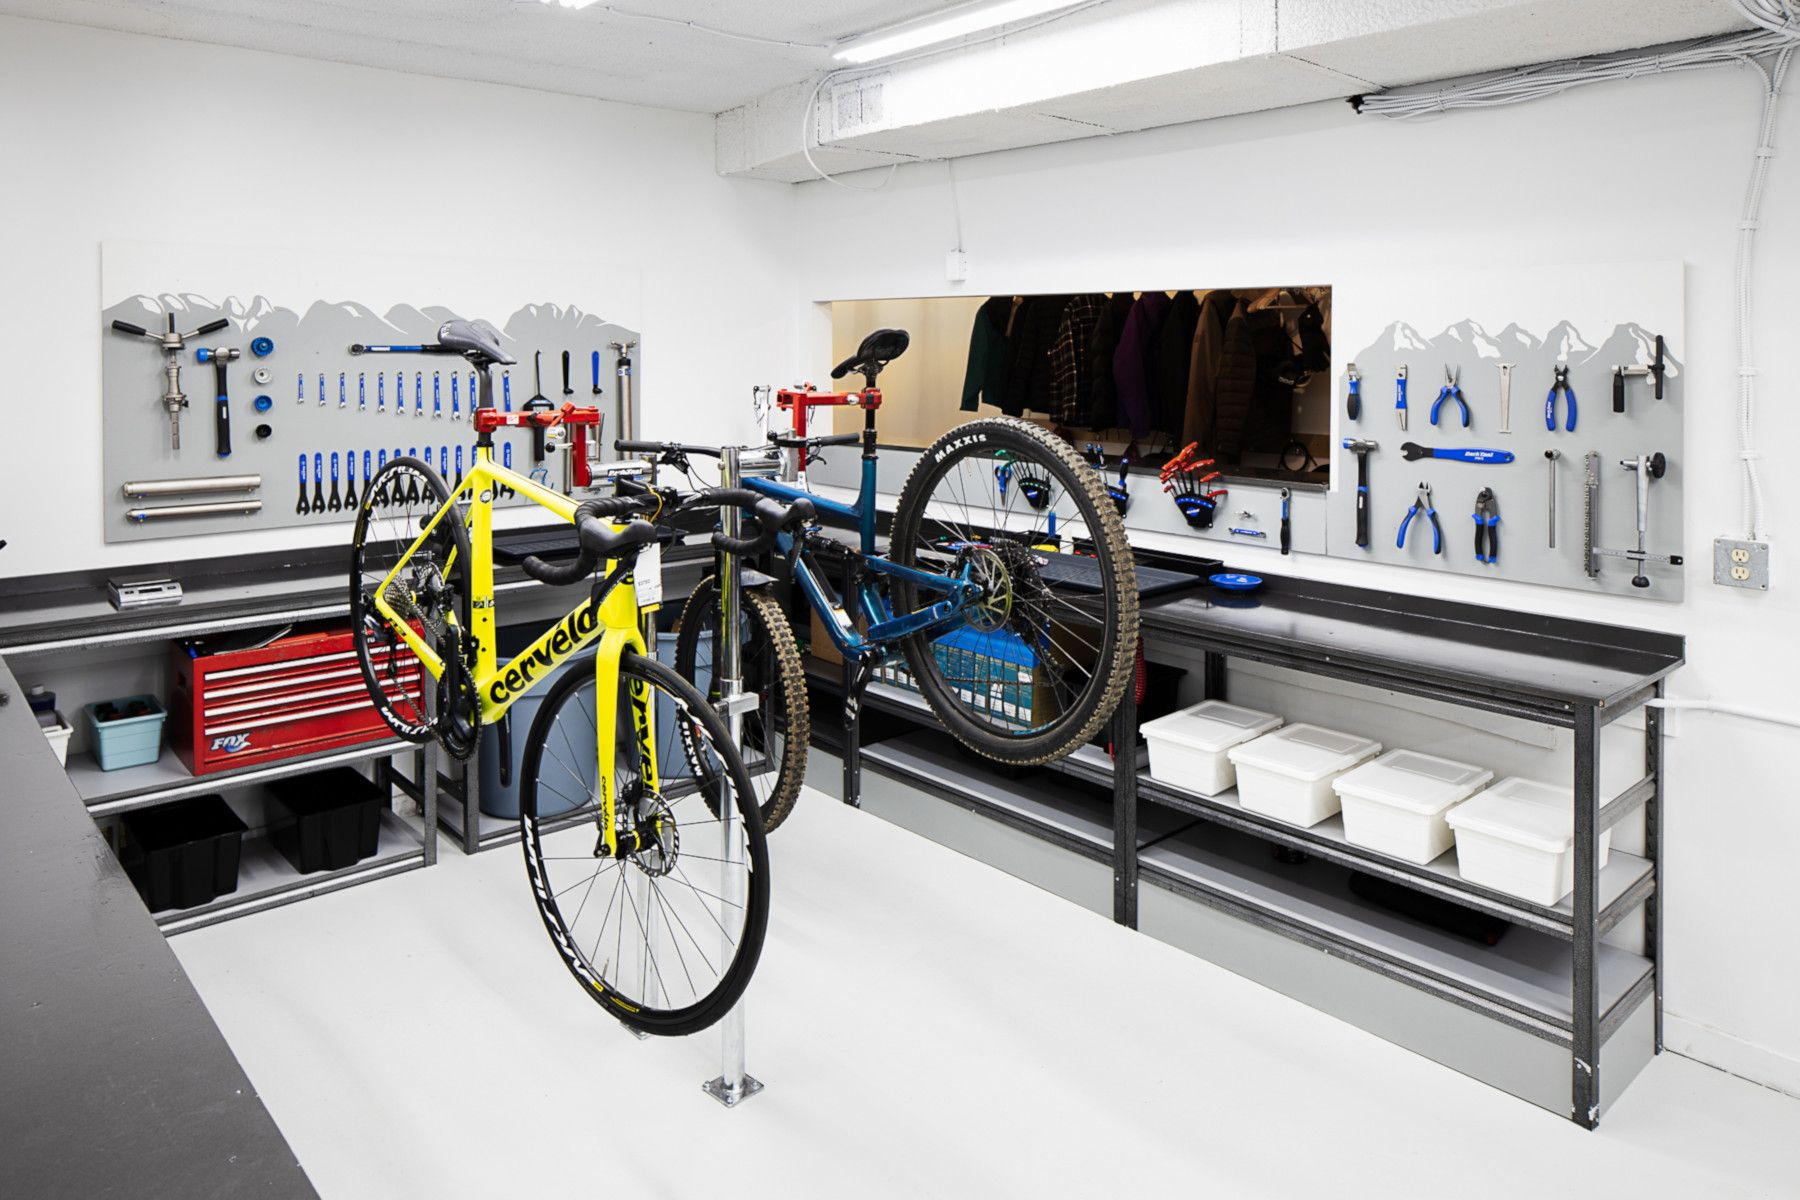 Road Bike and Mountain Bike Repair Shop - Bicicletta